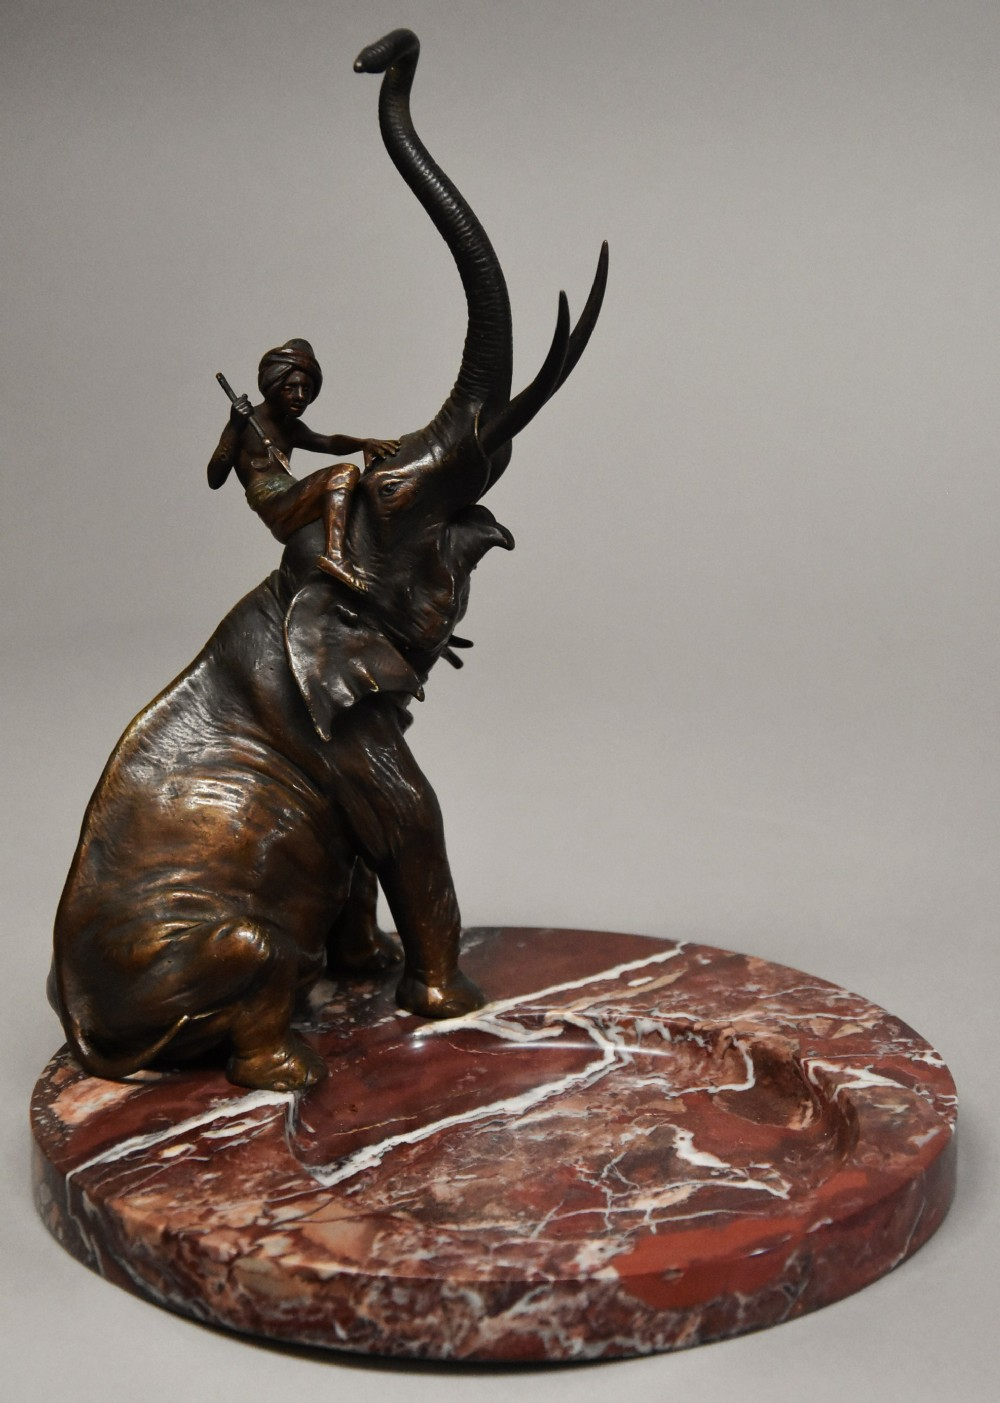 superb quality late 19th century bronze elephant on marble base by franz bergman